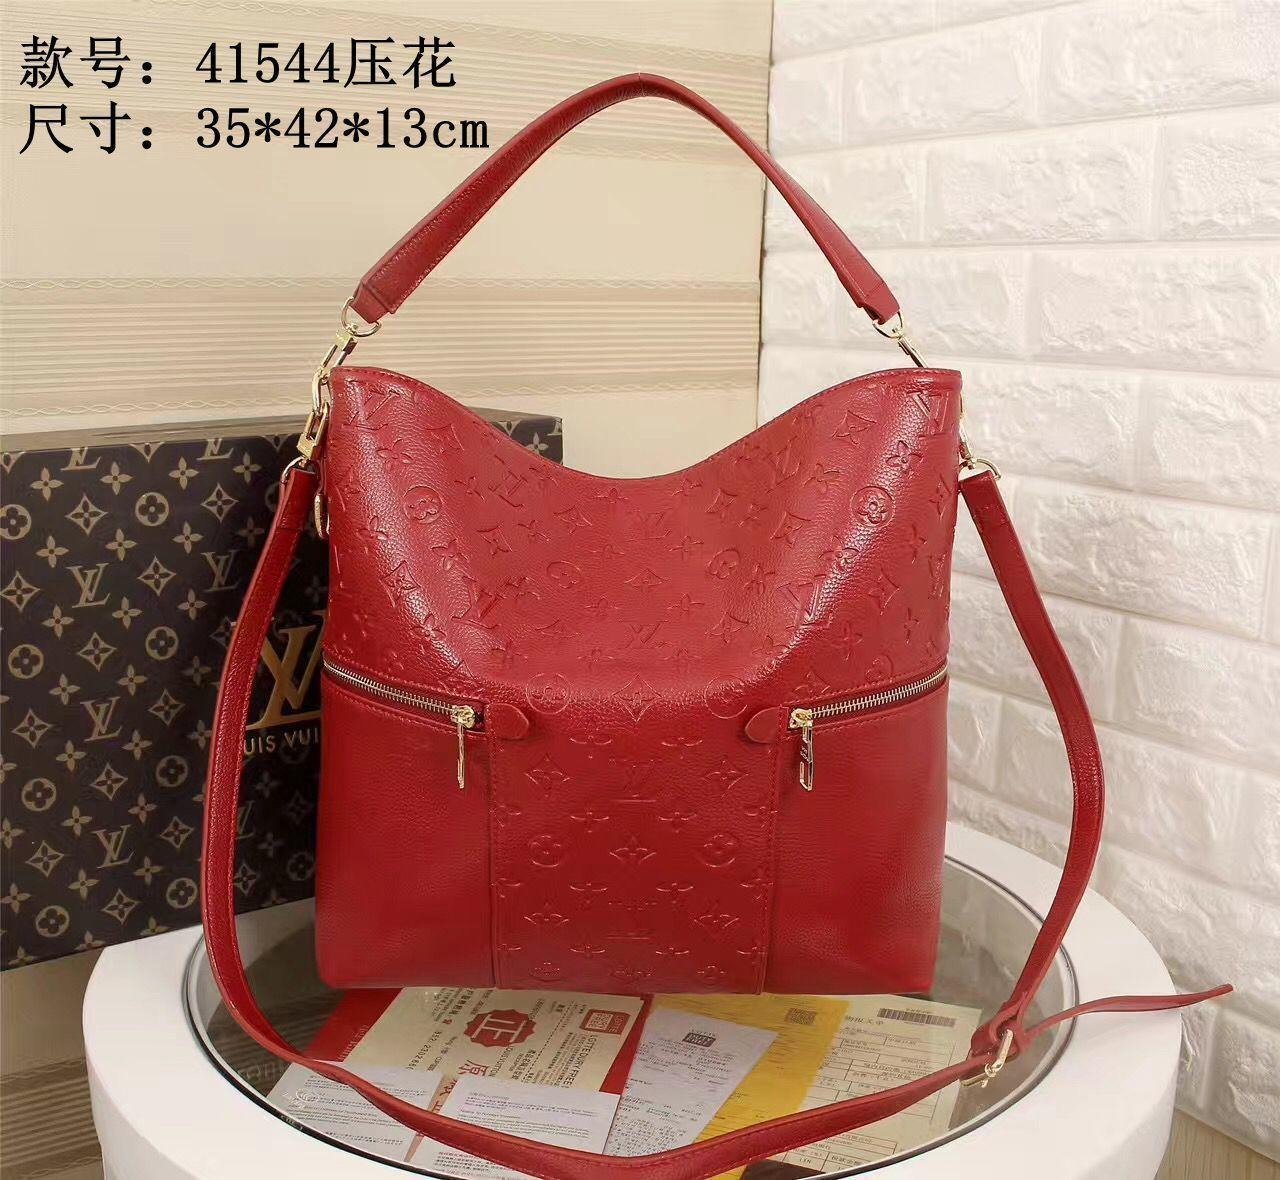 With metal engraved zipper head women's high quality fashionable personalized Slanting handbags 022004